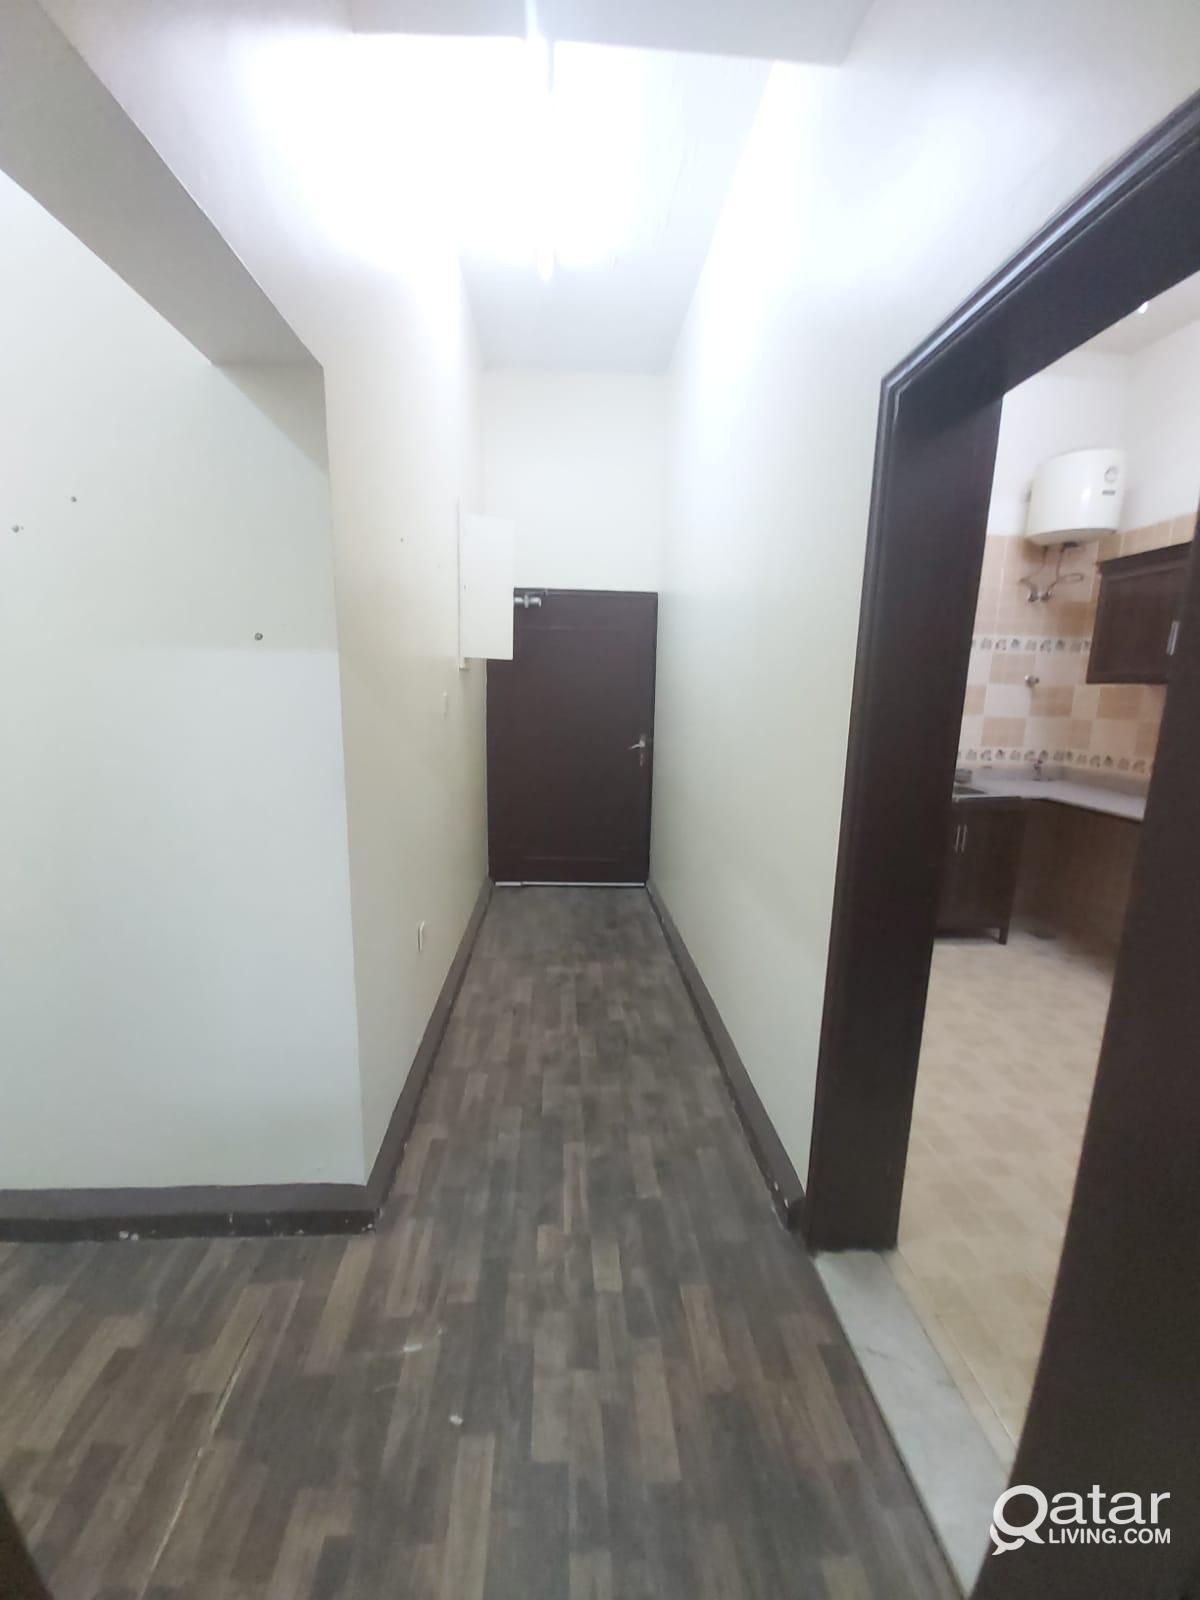 Spacious: 2 Month Free - 2 Bedroom Apartment @ Al